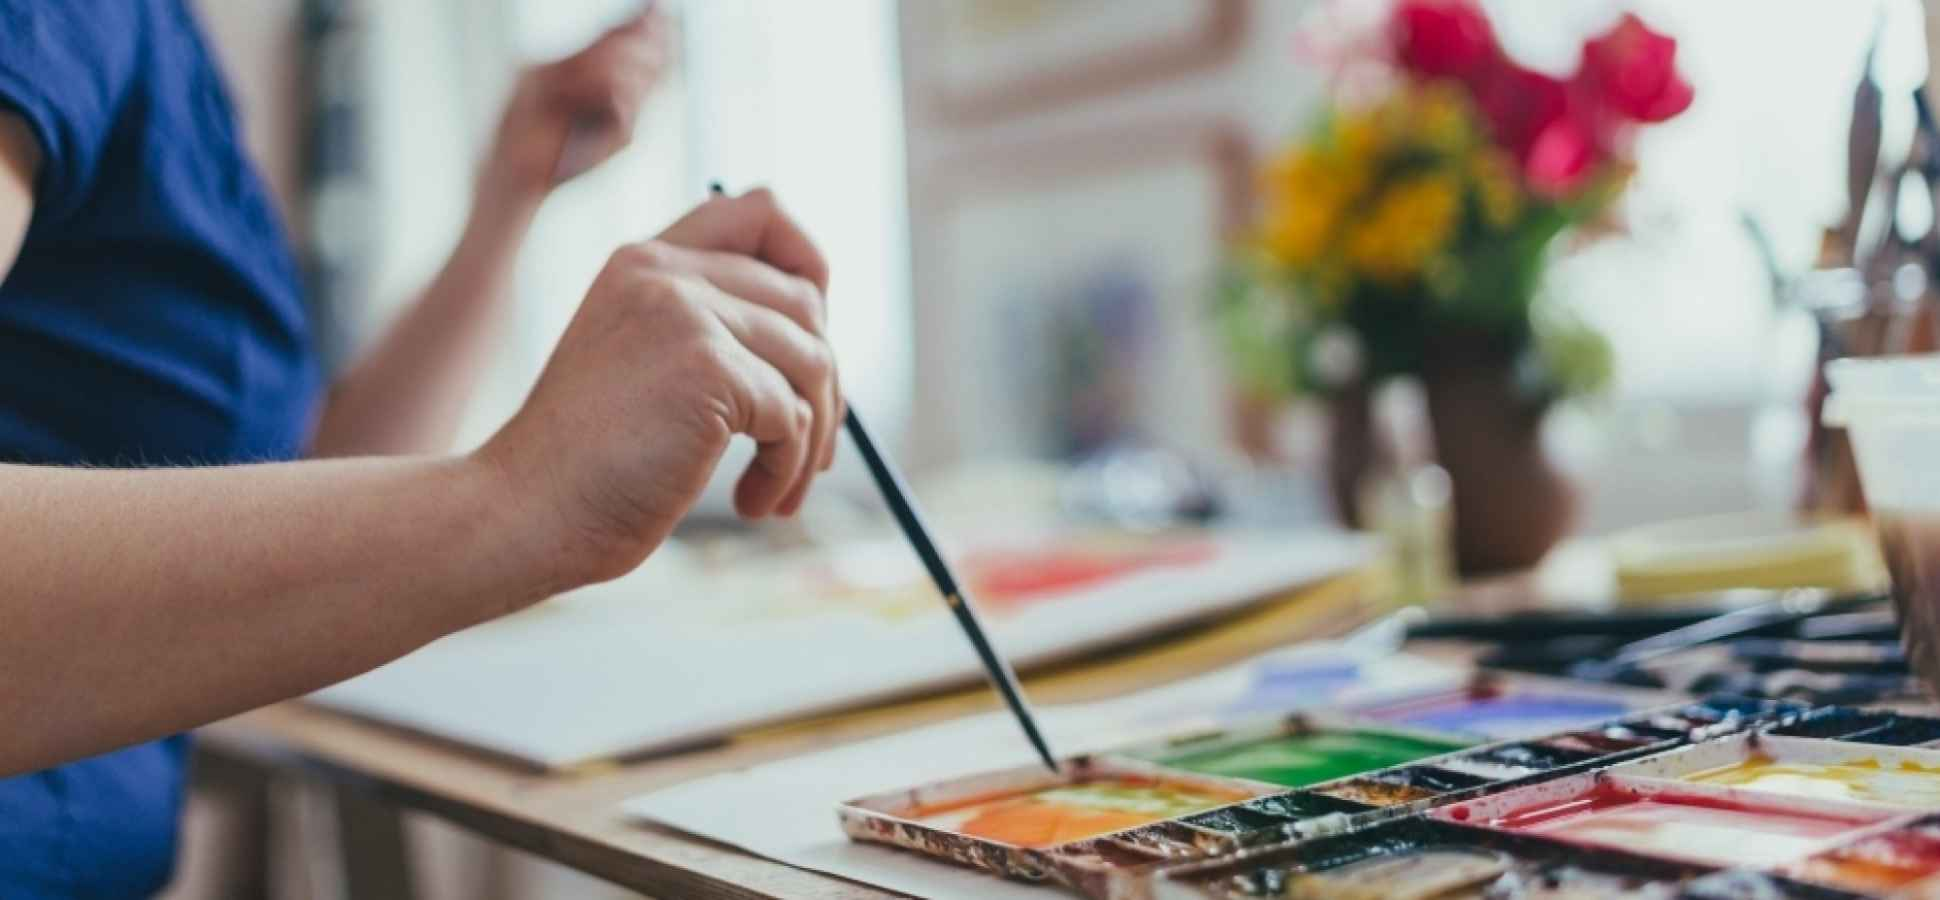 5 Ways to Be More Creative